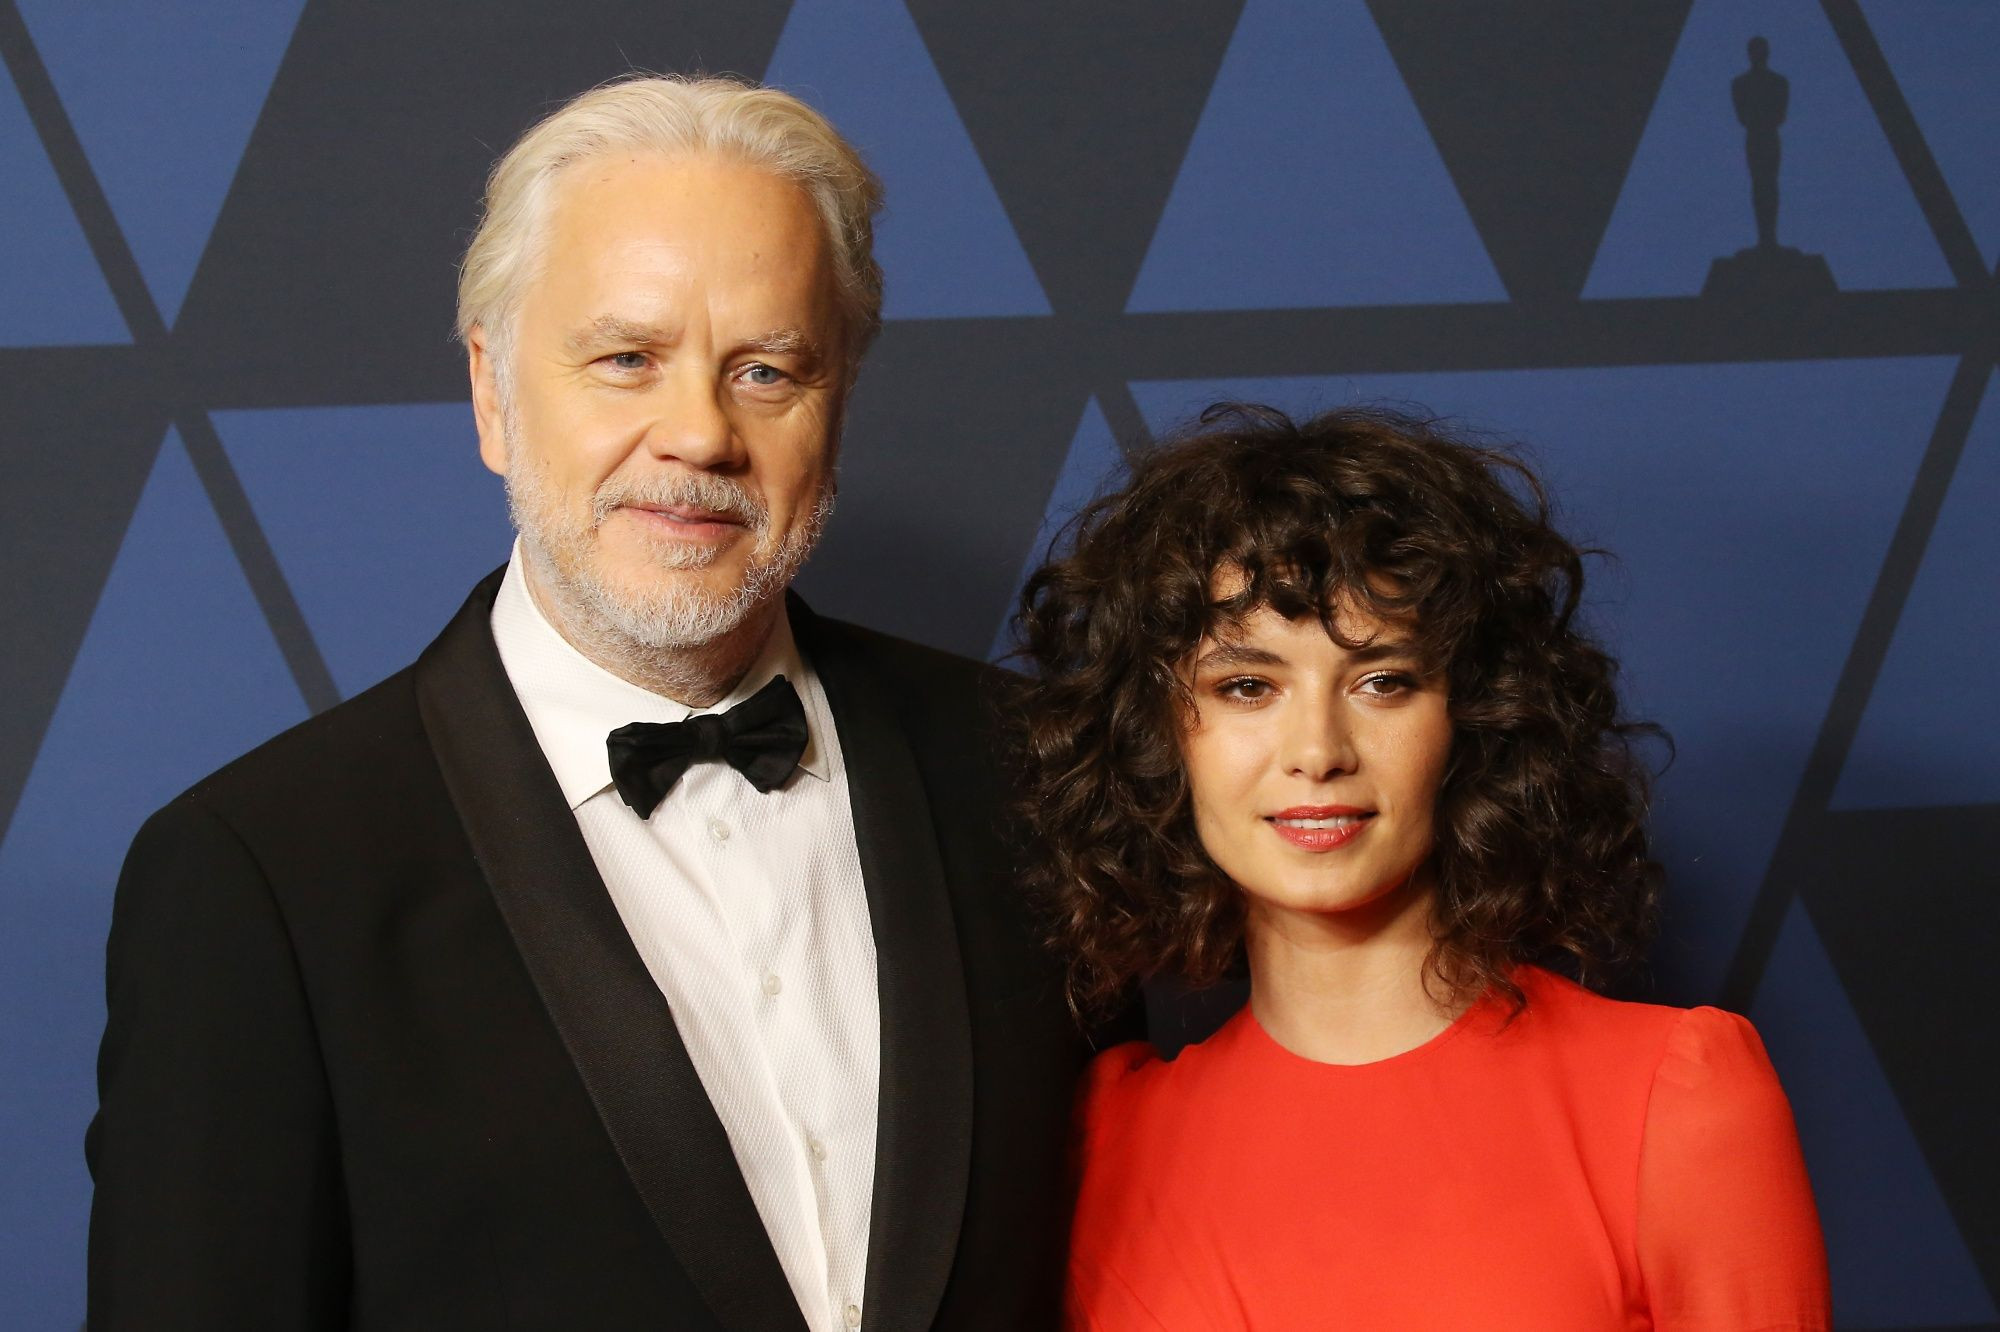 Actor Tim Robbins, 62, files for divorce from his